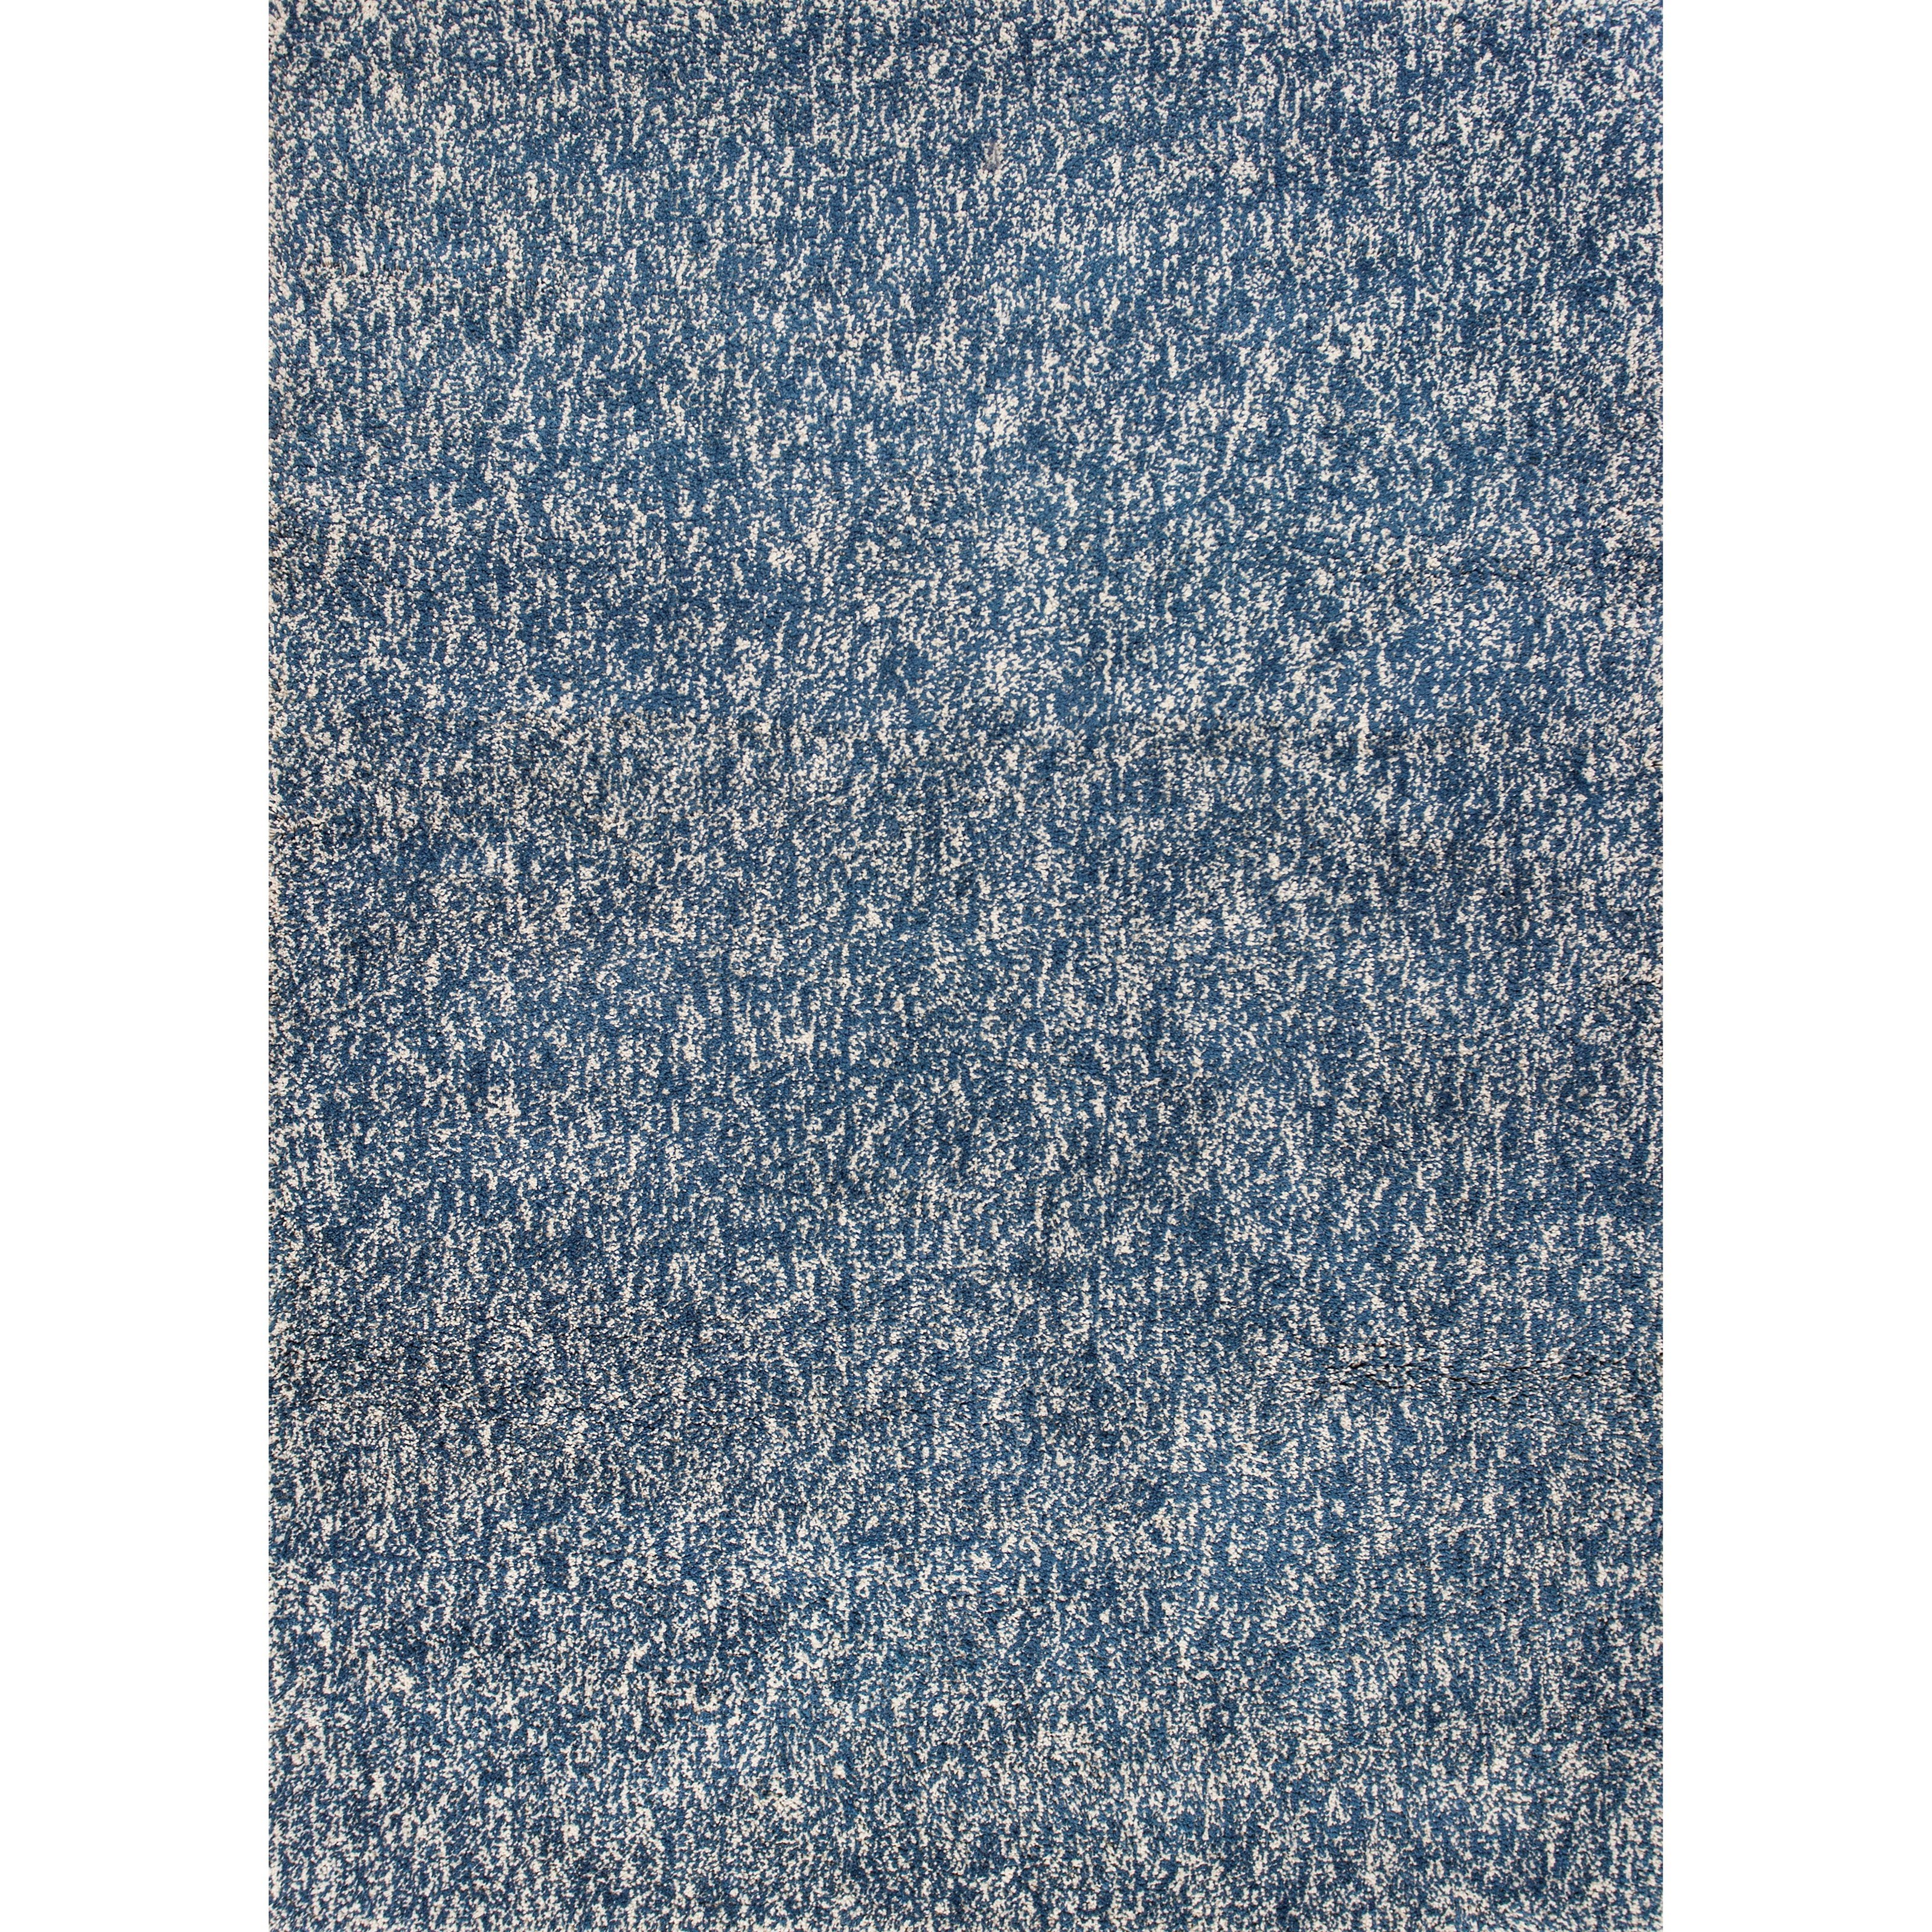 """Bliss 9'6"""" X 7'6"""" Area Rug by Kas at Zak's Home"""